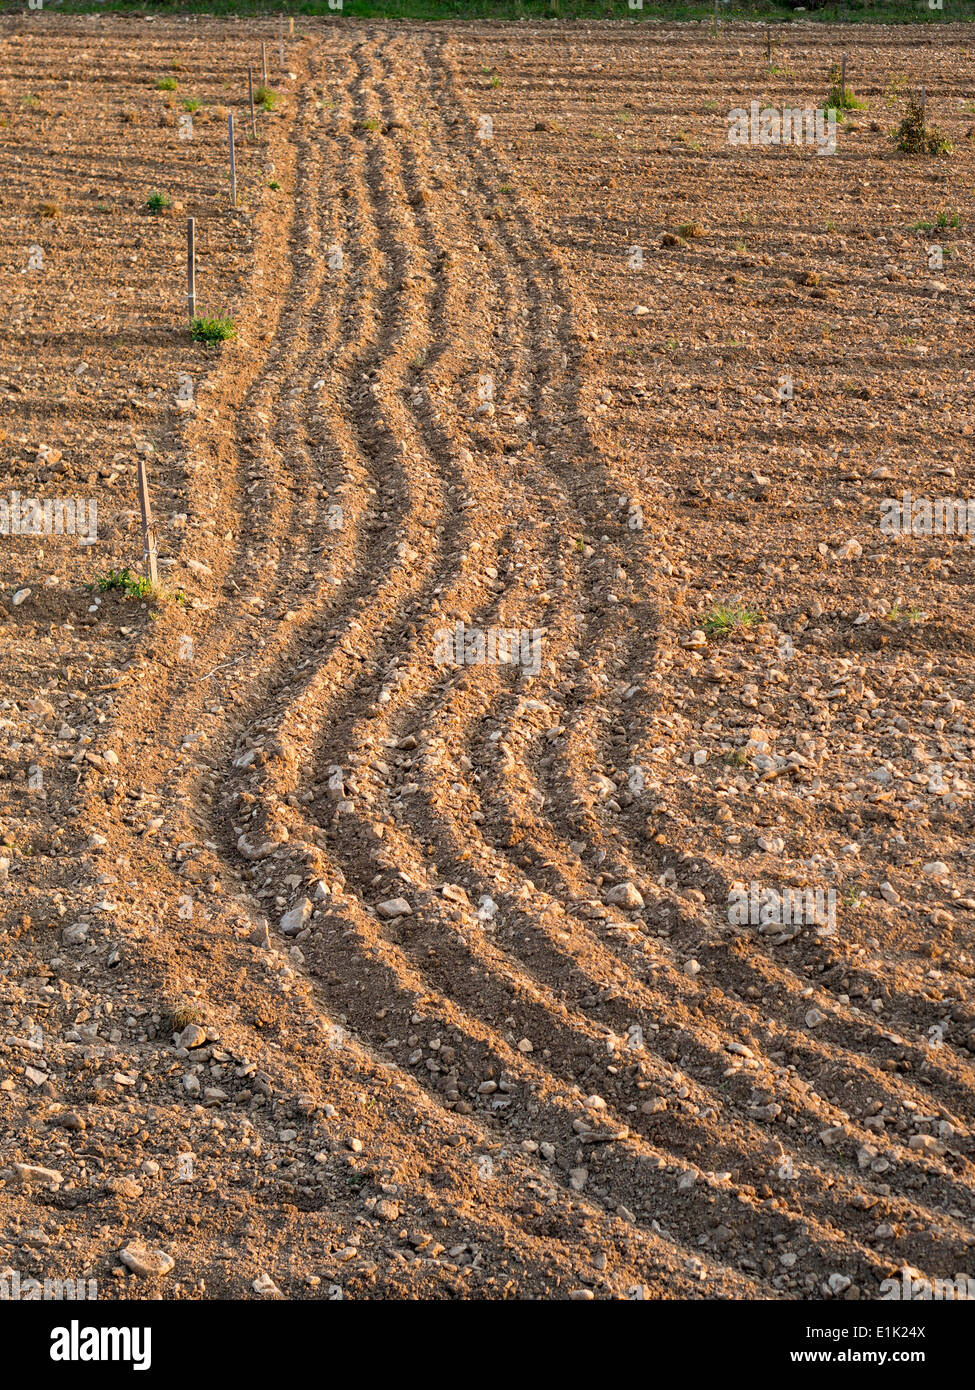 Stony Ground, A Freshly Plowed Field. A field being newly planted to grape vines displays the lines of recent cultivation. - Stock Image